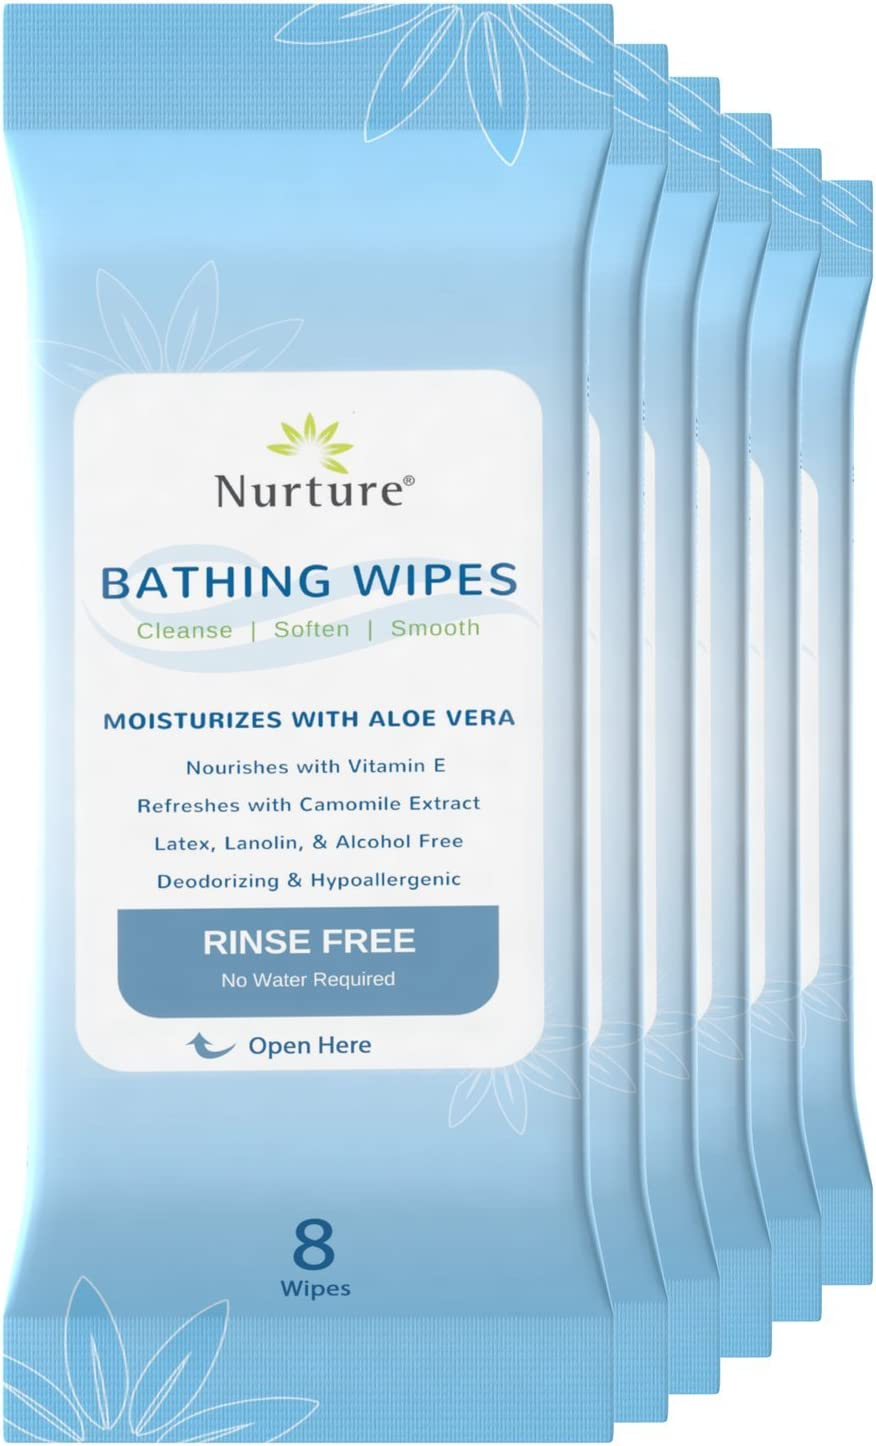 No Rinse Bathing Wipes (6-Pack) | 48 Microwavable Adult Wash Cloths with Aloe Vera and Vitamin E - Rinse Free Cleansing Body Bath Wipes - Latex, Lanolin, and Alcohol Free - 6 Packs of 8 Wipes